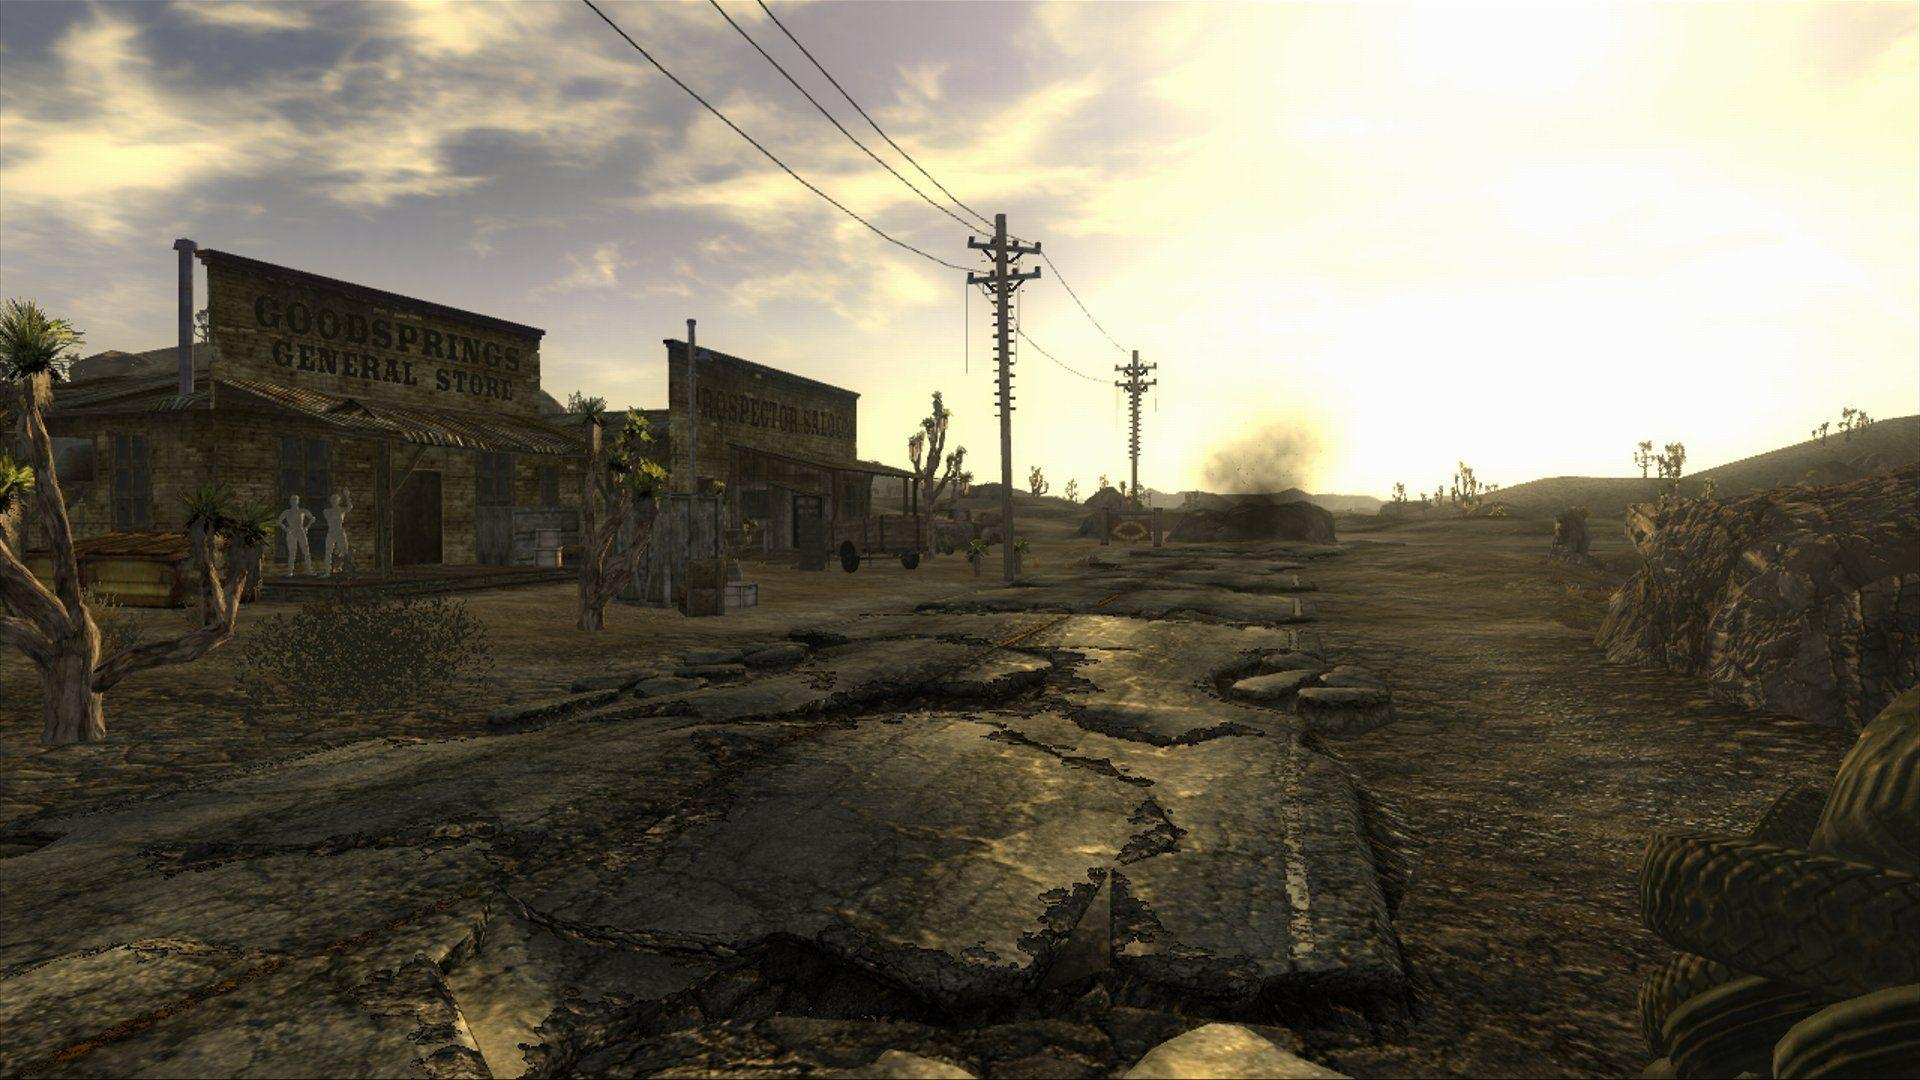 fallout nv wallpaper - photo #15